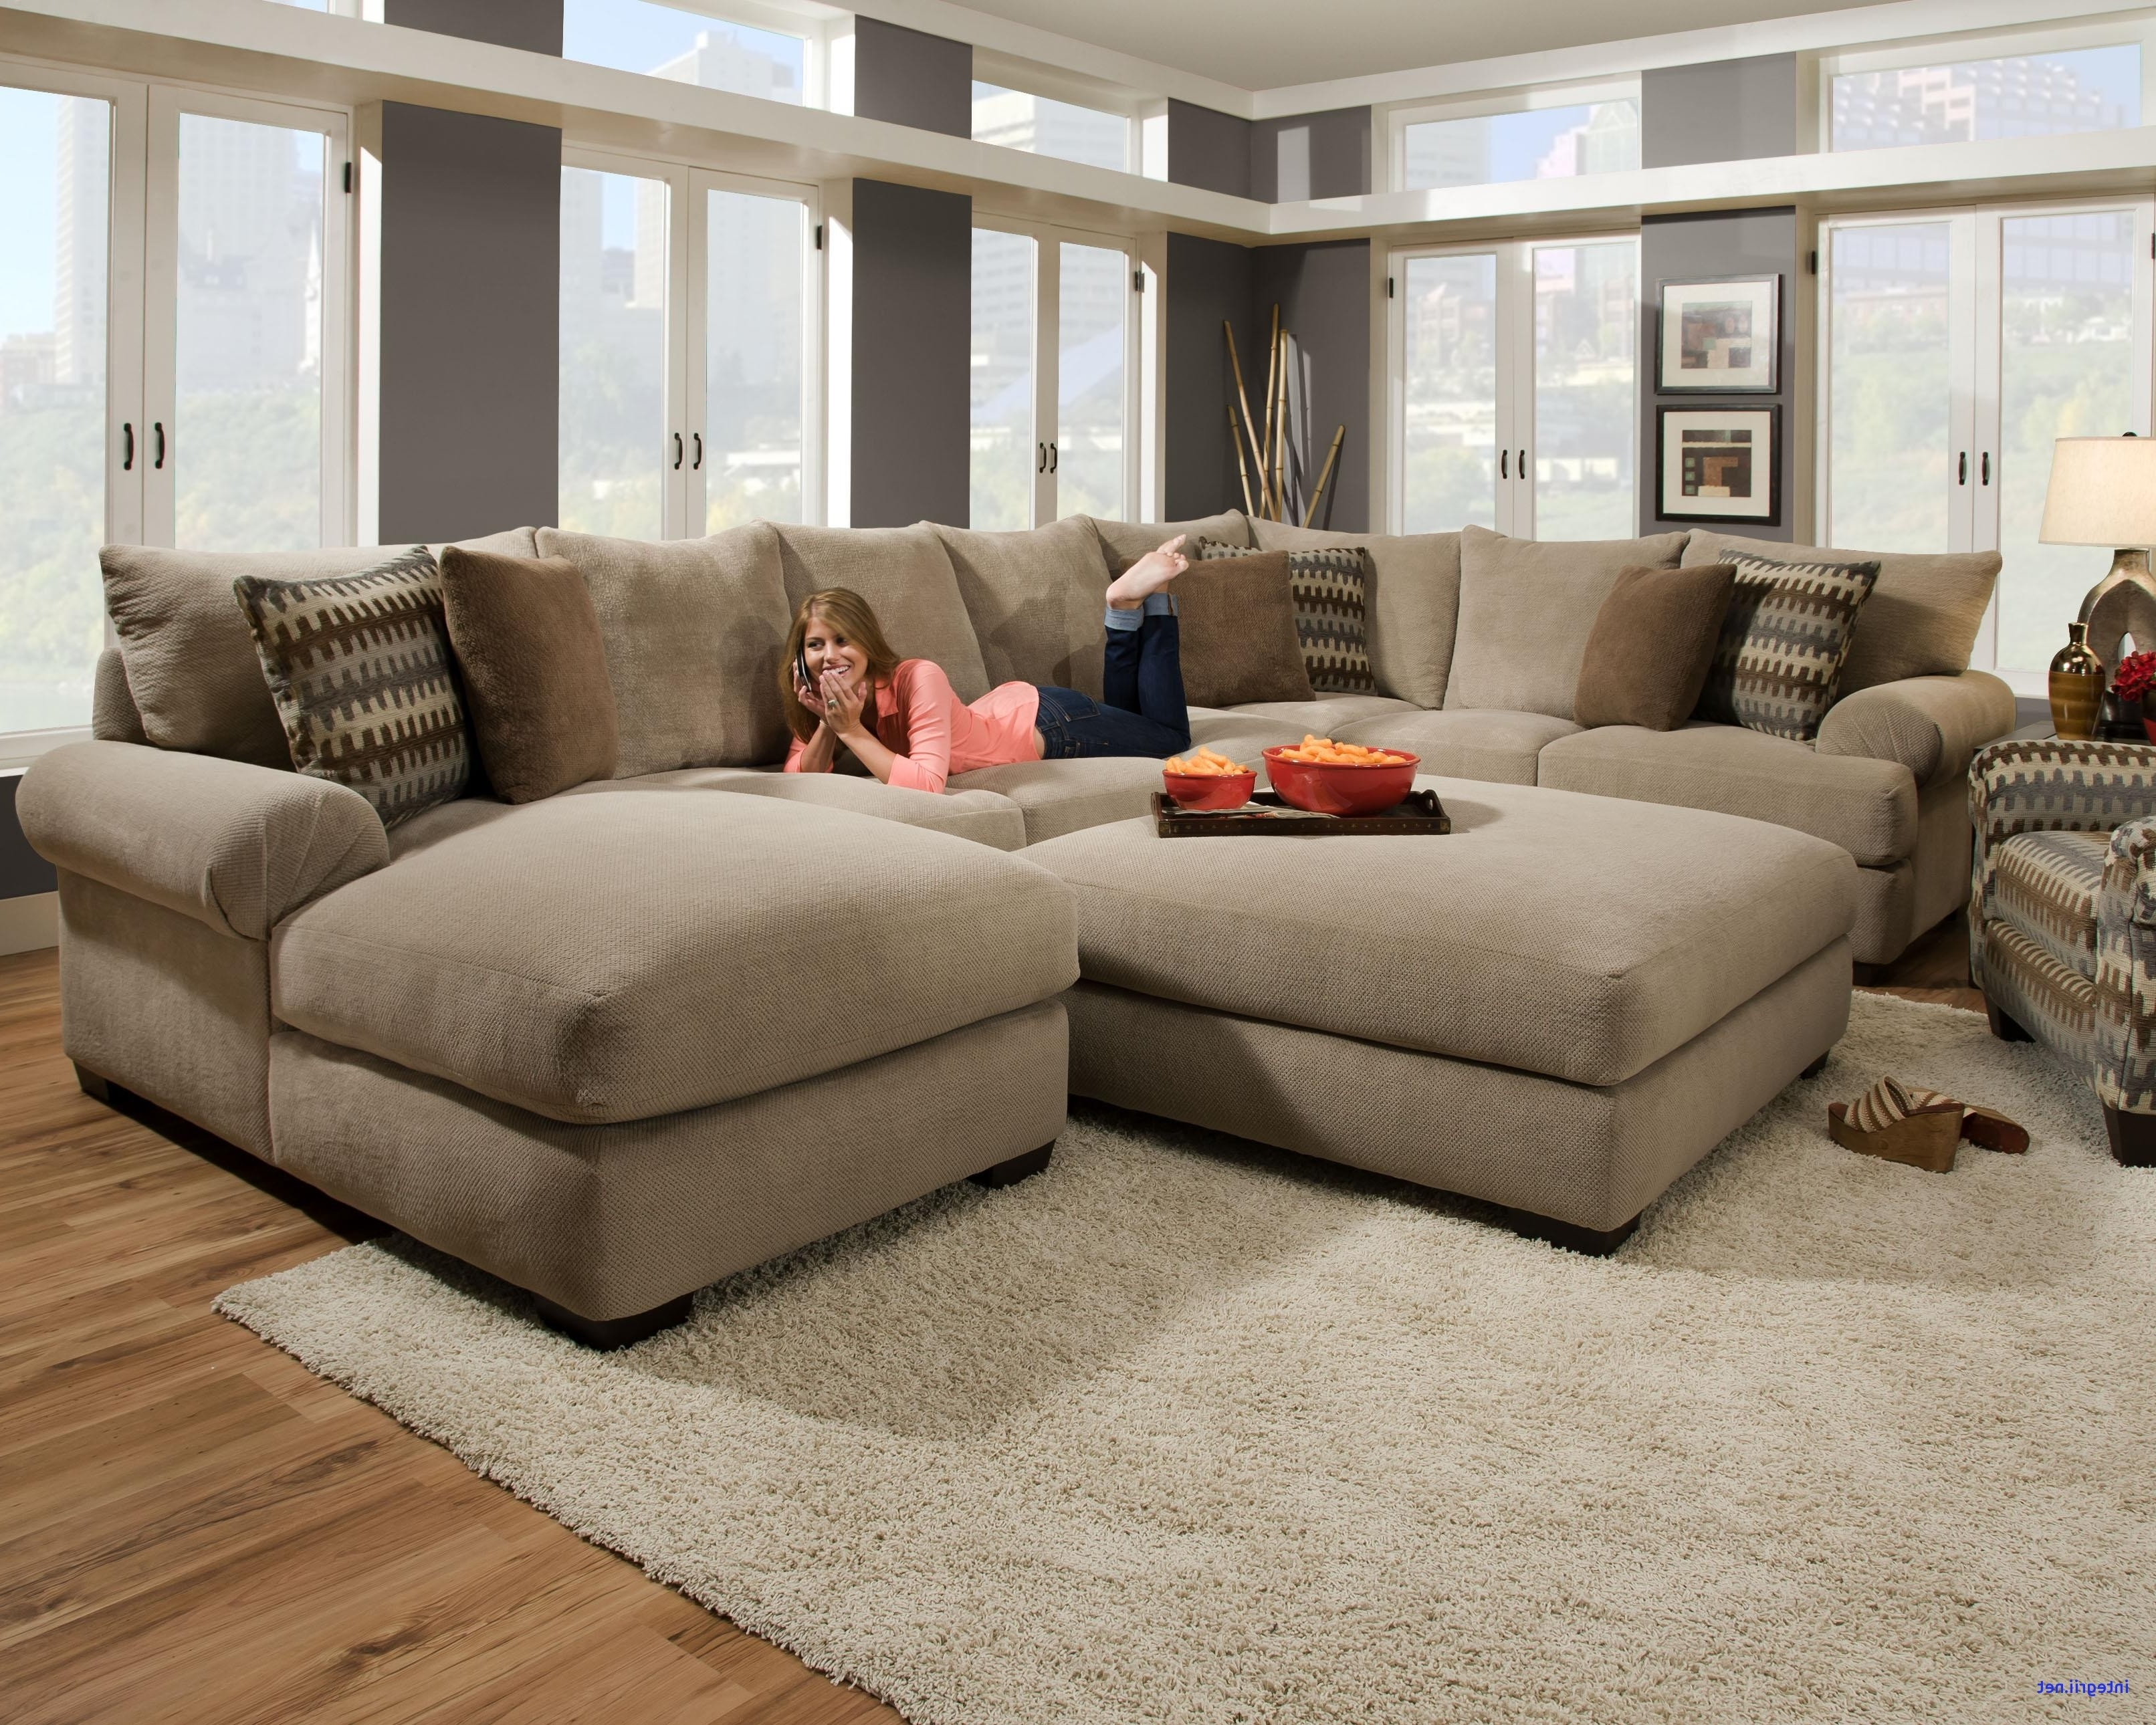 Royal Furniture Sectional Sofas In Best And Newest Sectional Furniture Beautiful Affordable Furniture 3650 Sofa (View 8 of 20)